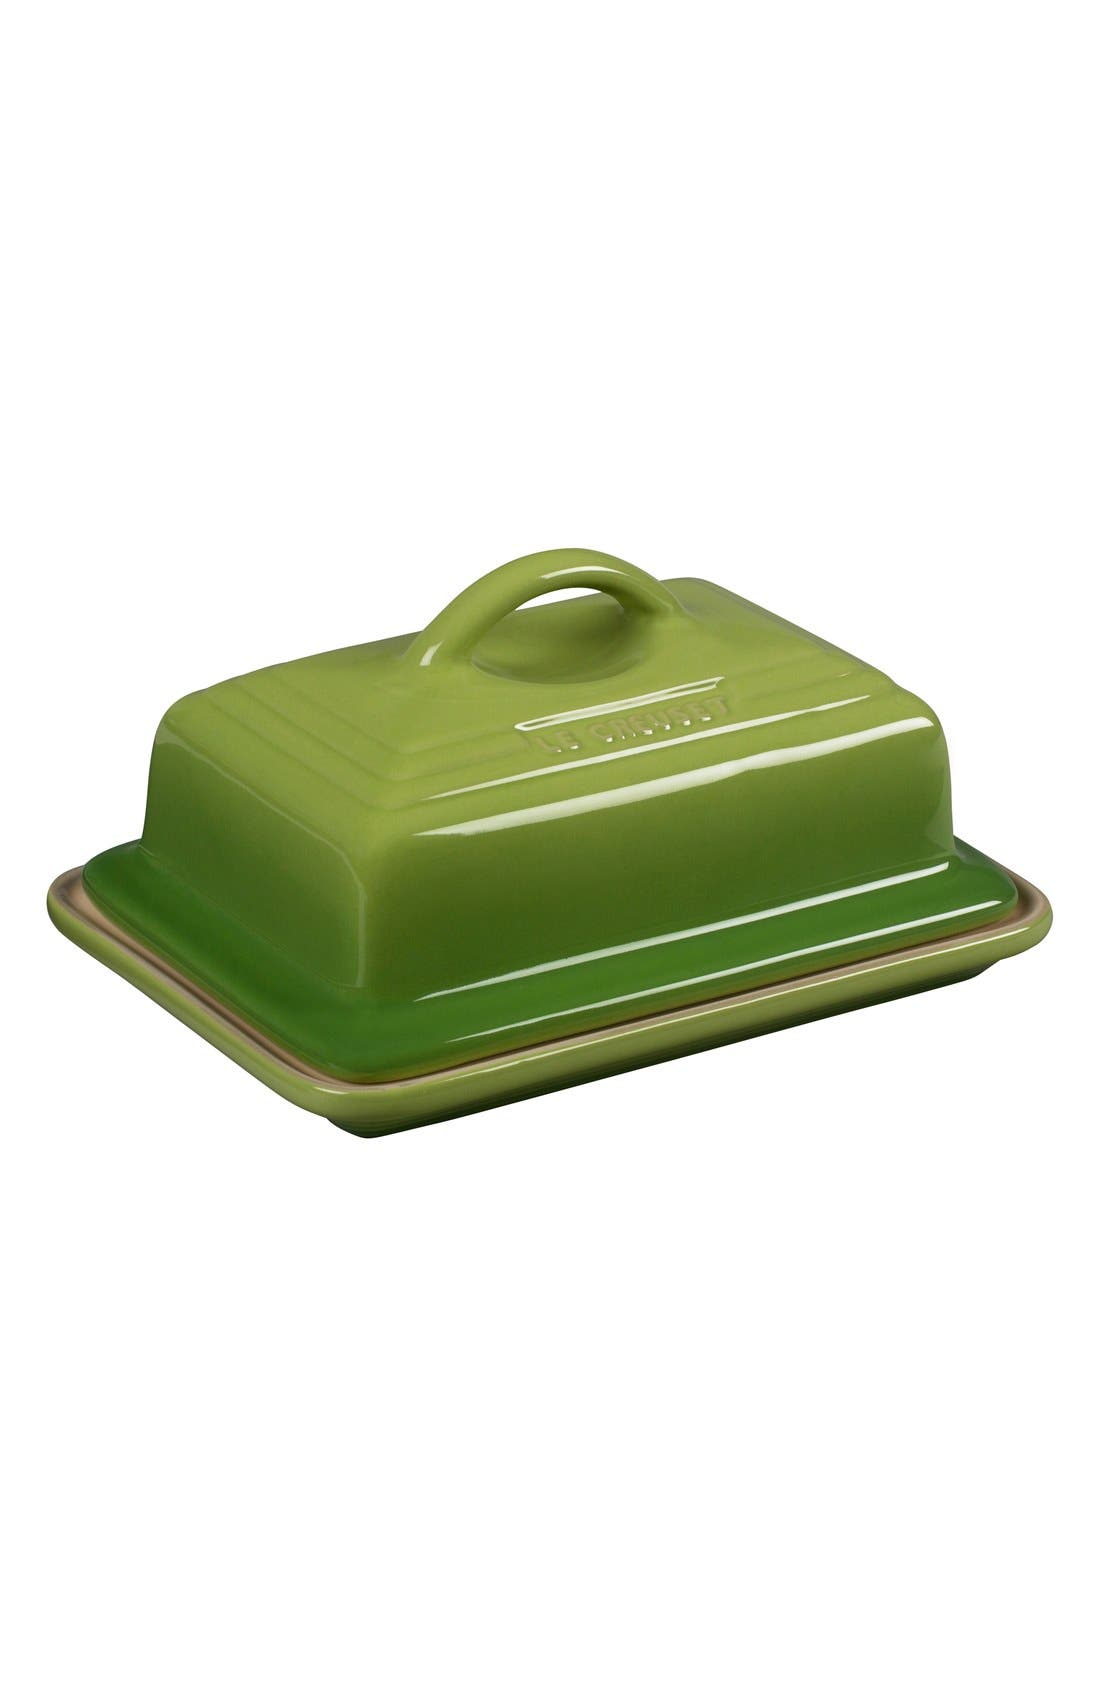 Main Image - Le Creuset 'Heritage' Stoneware Butter Dish & Lid